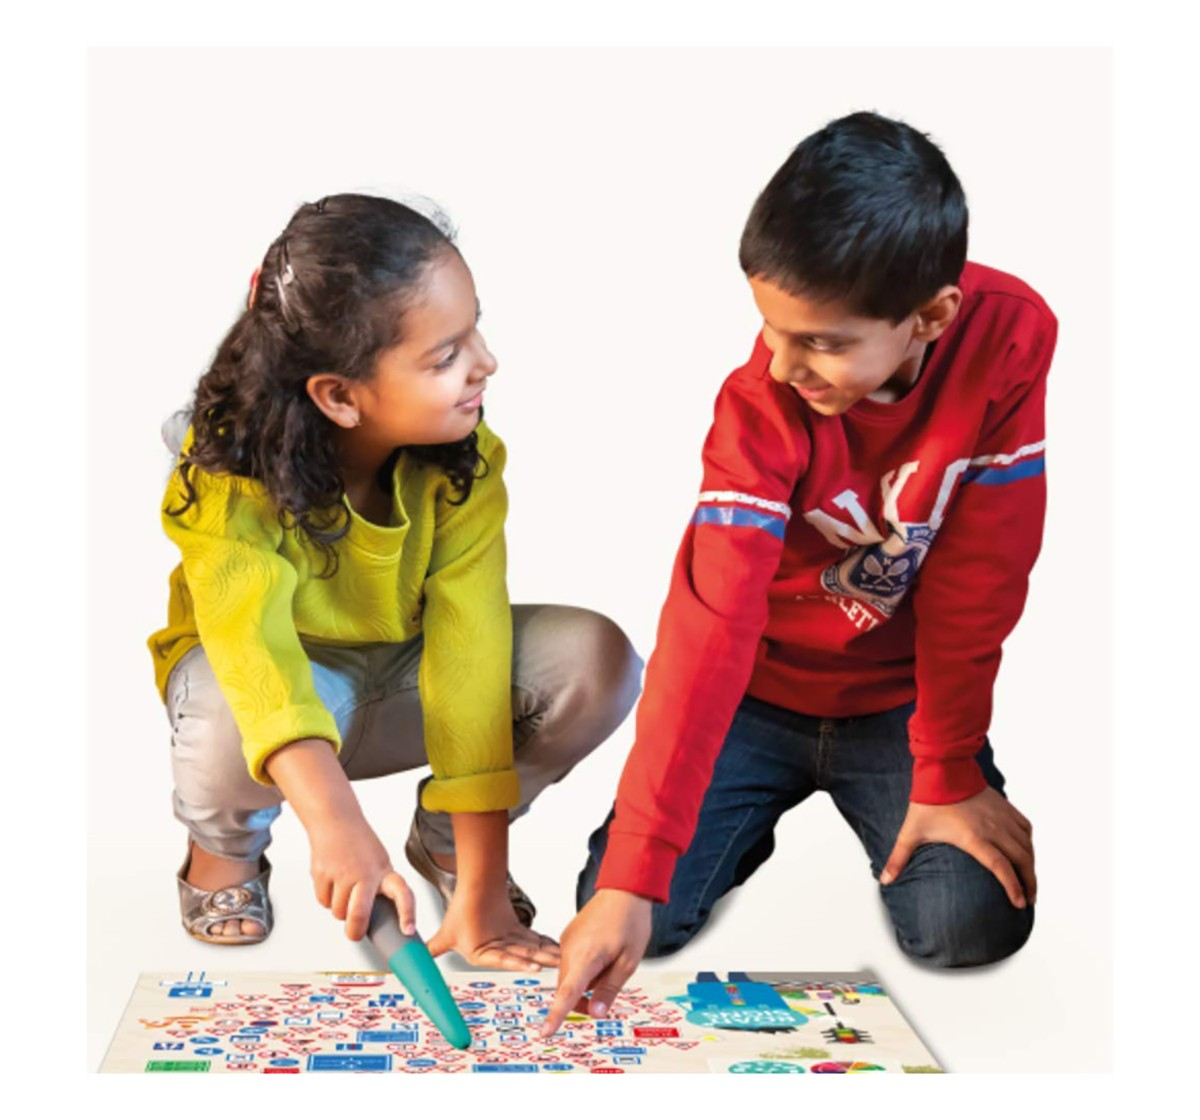 Go Discover Smart Chart - Interactive Learning Series Games for Kids age 5Y+